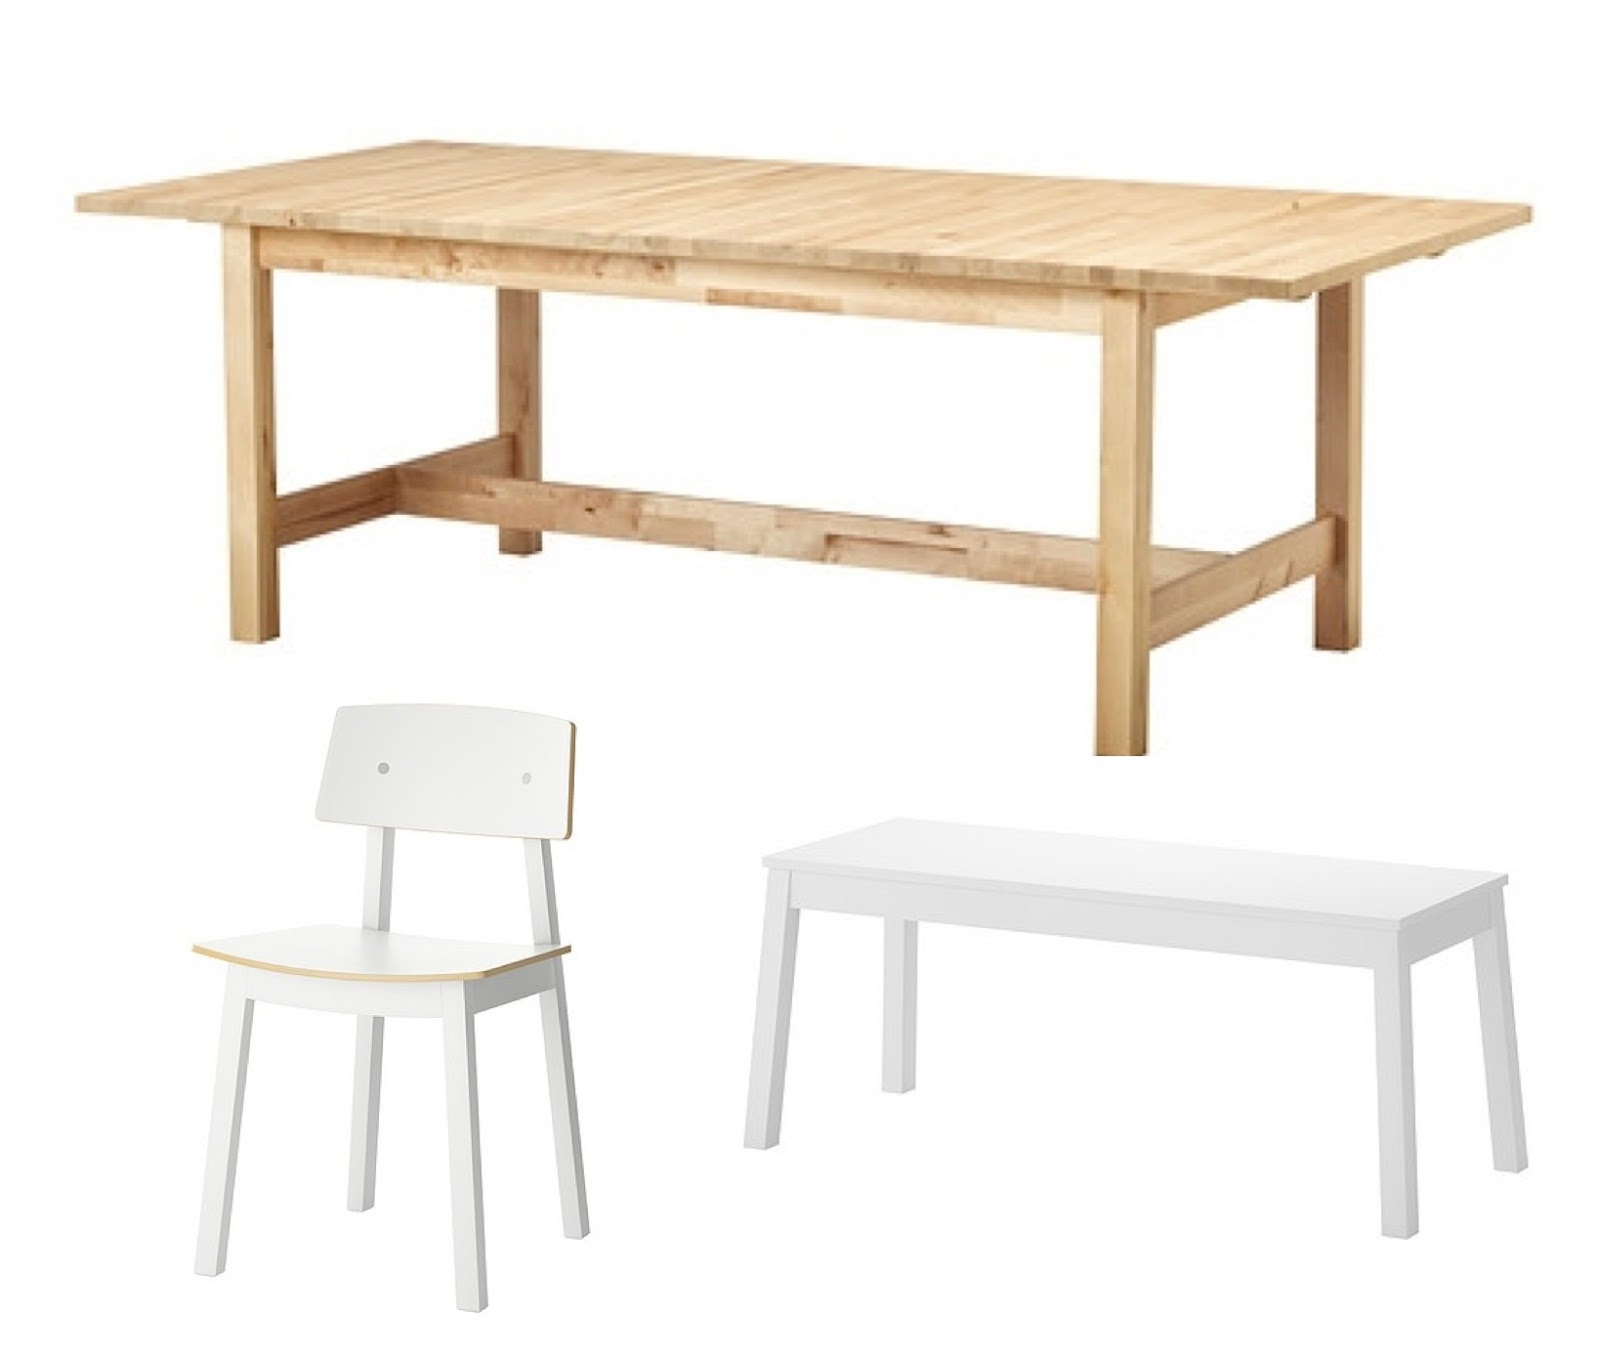 Bench Dining Table Ikea: New Dining Table And Chairs For The Green Wallpaper